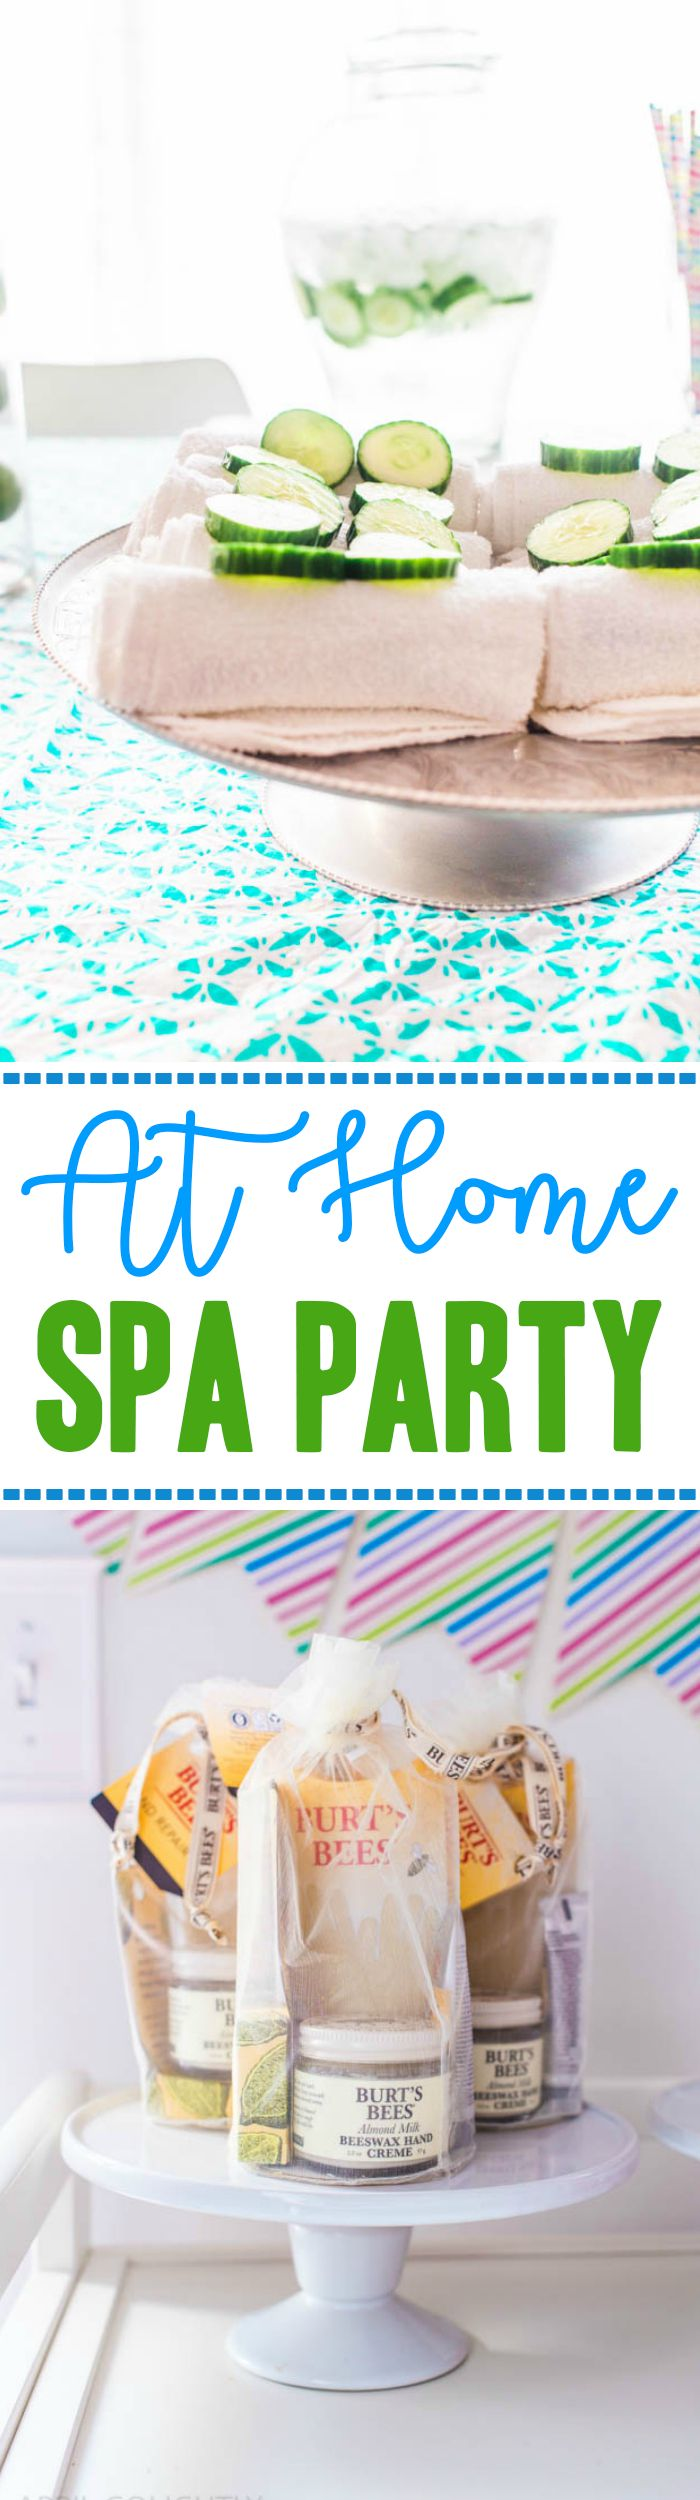 Spa Night at Home with menu with recipes and drink recipes, spa party plan with feet and hand focus to keep them moisturized and relaxed #gathernow AD